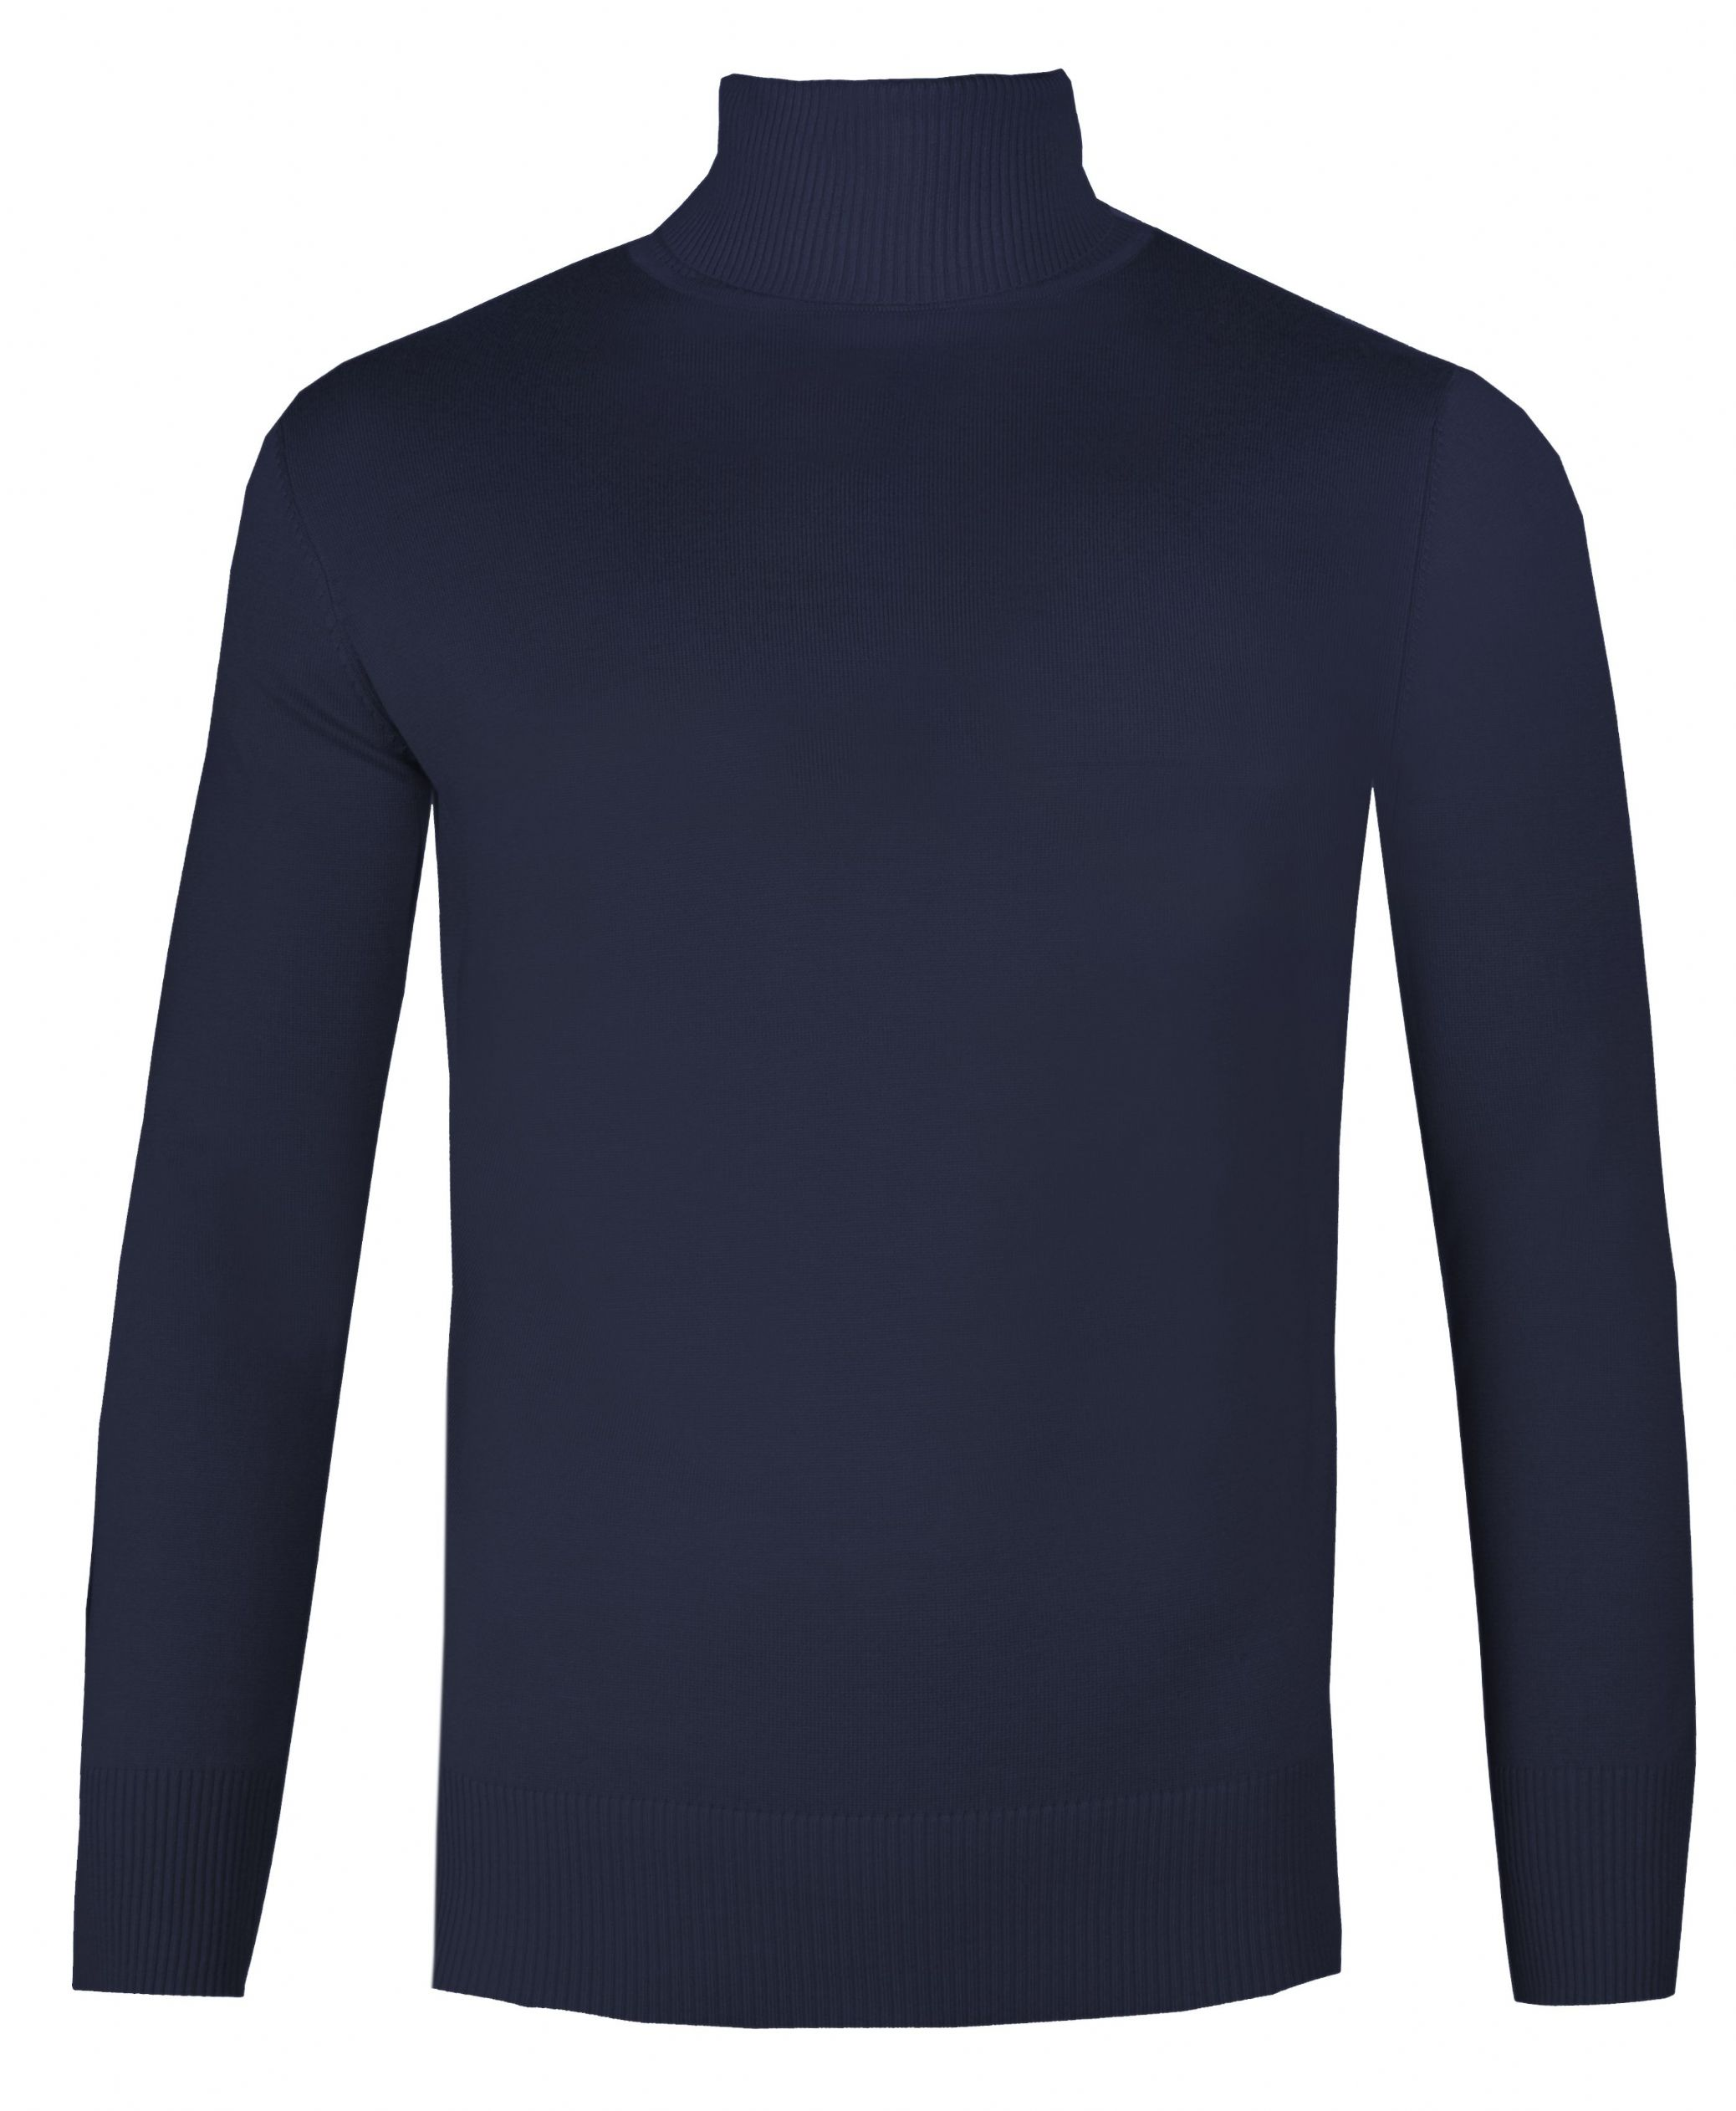 c4f68626c6e0bc Mens Fine Knit Roll Neck Jumpers